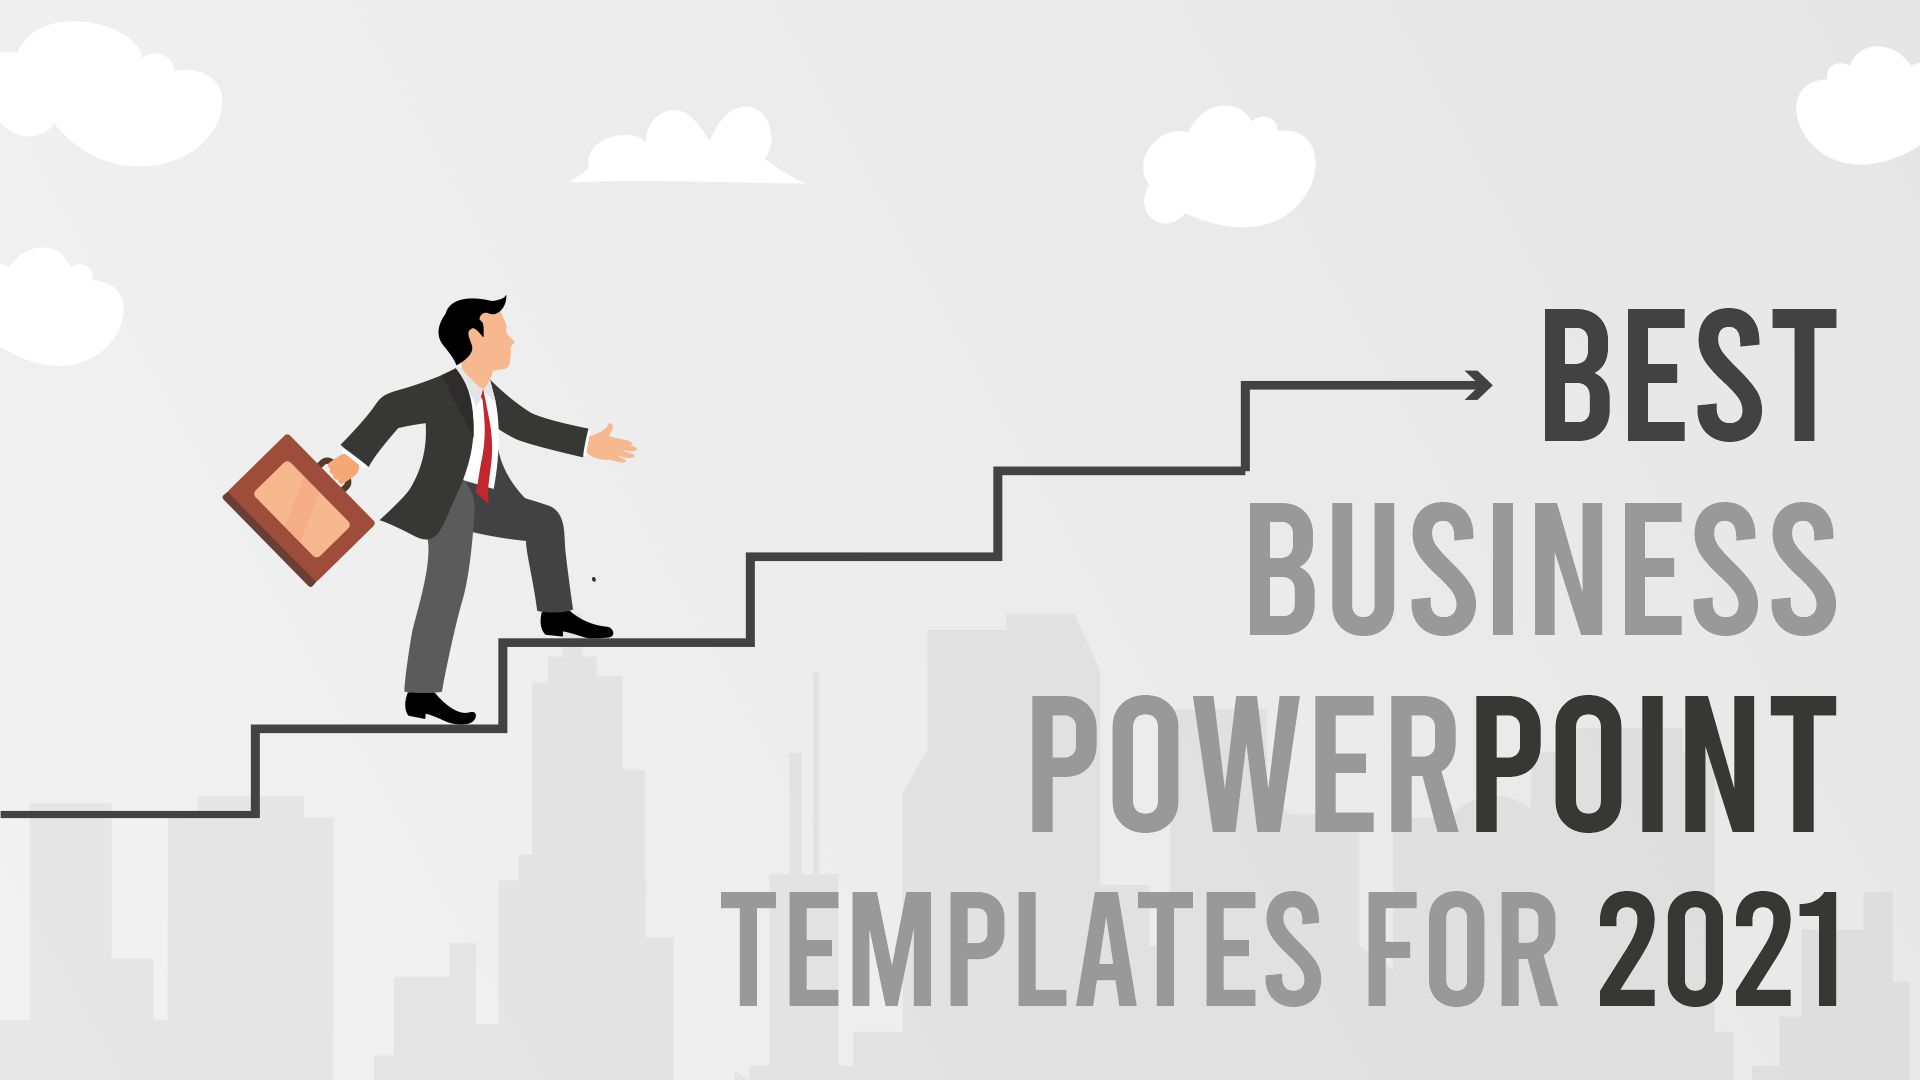 Ace Your Remote Presentations With The Best Business PowerPoint Templates 2021